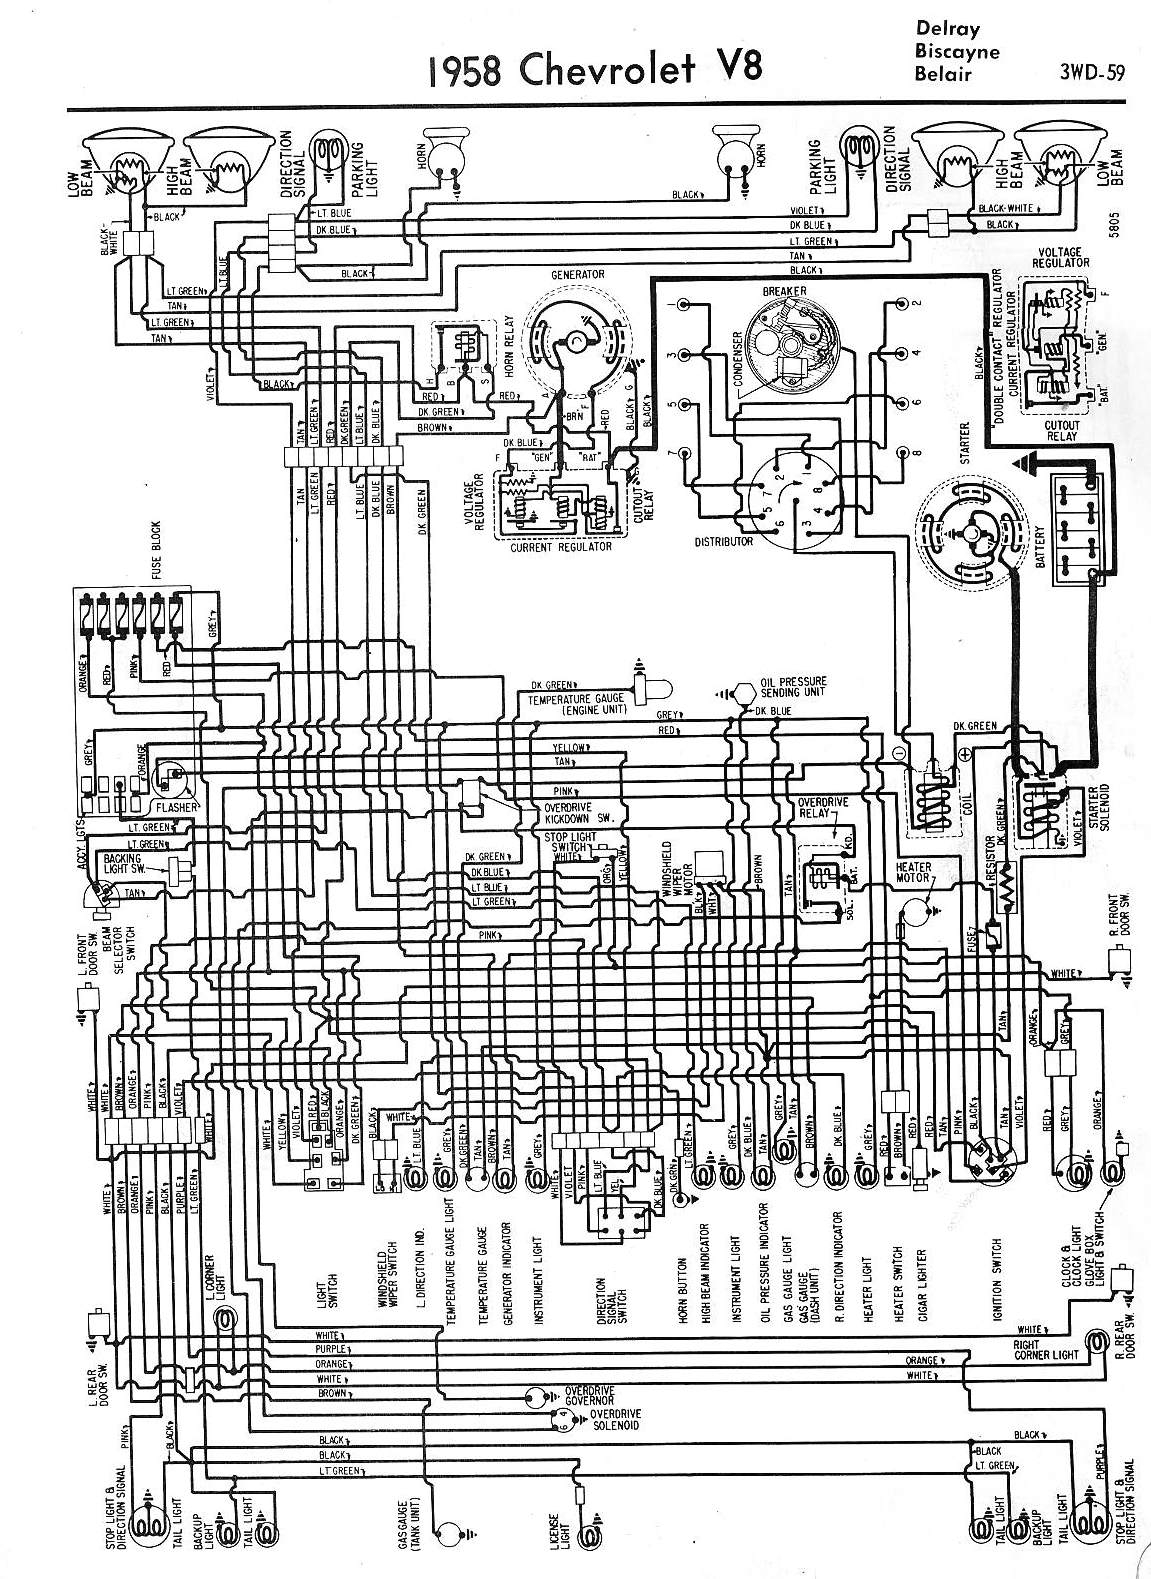 2003 Chevy Impala Wiring Diagram | Free Wiring Diagram